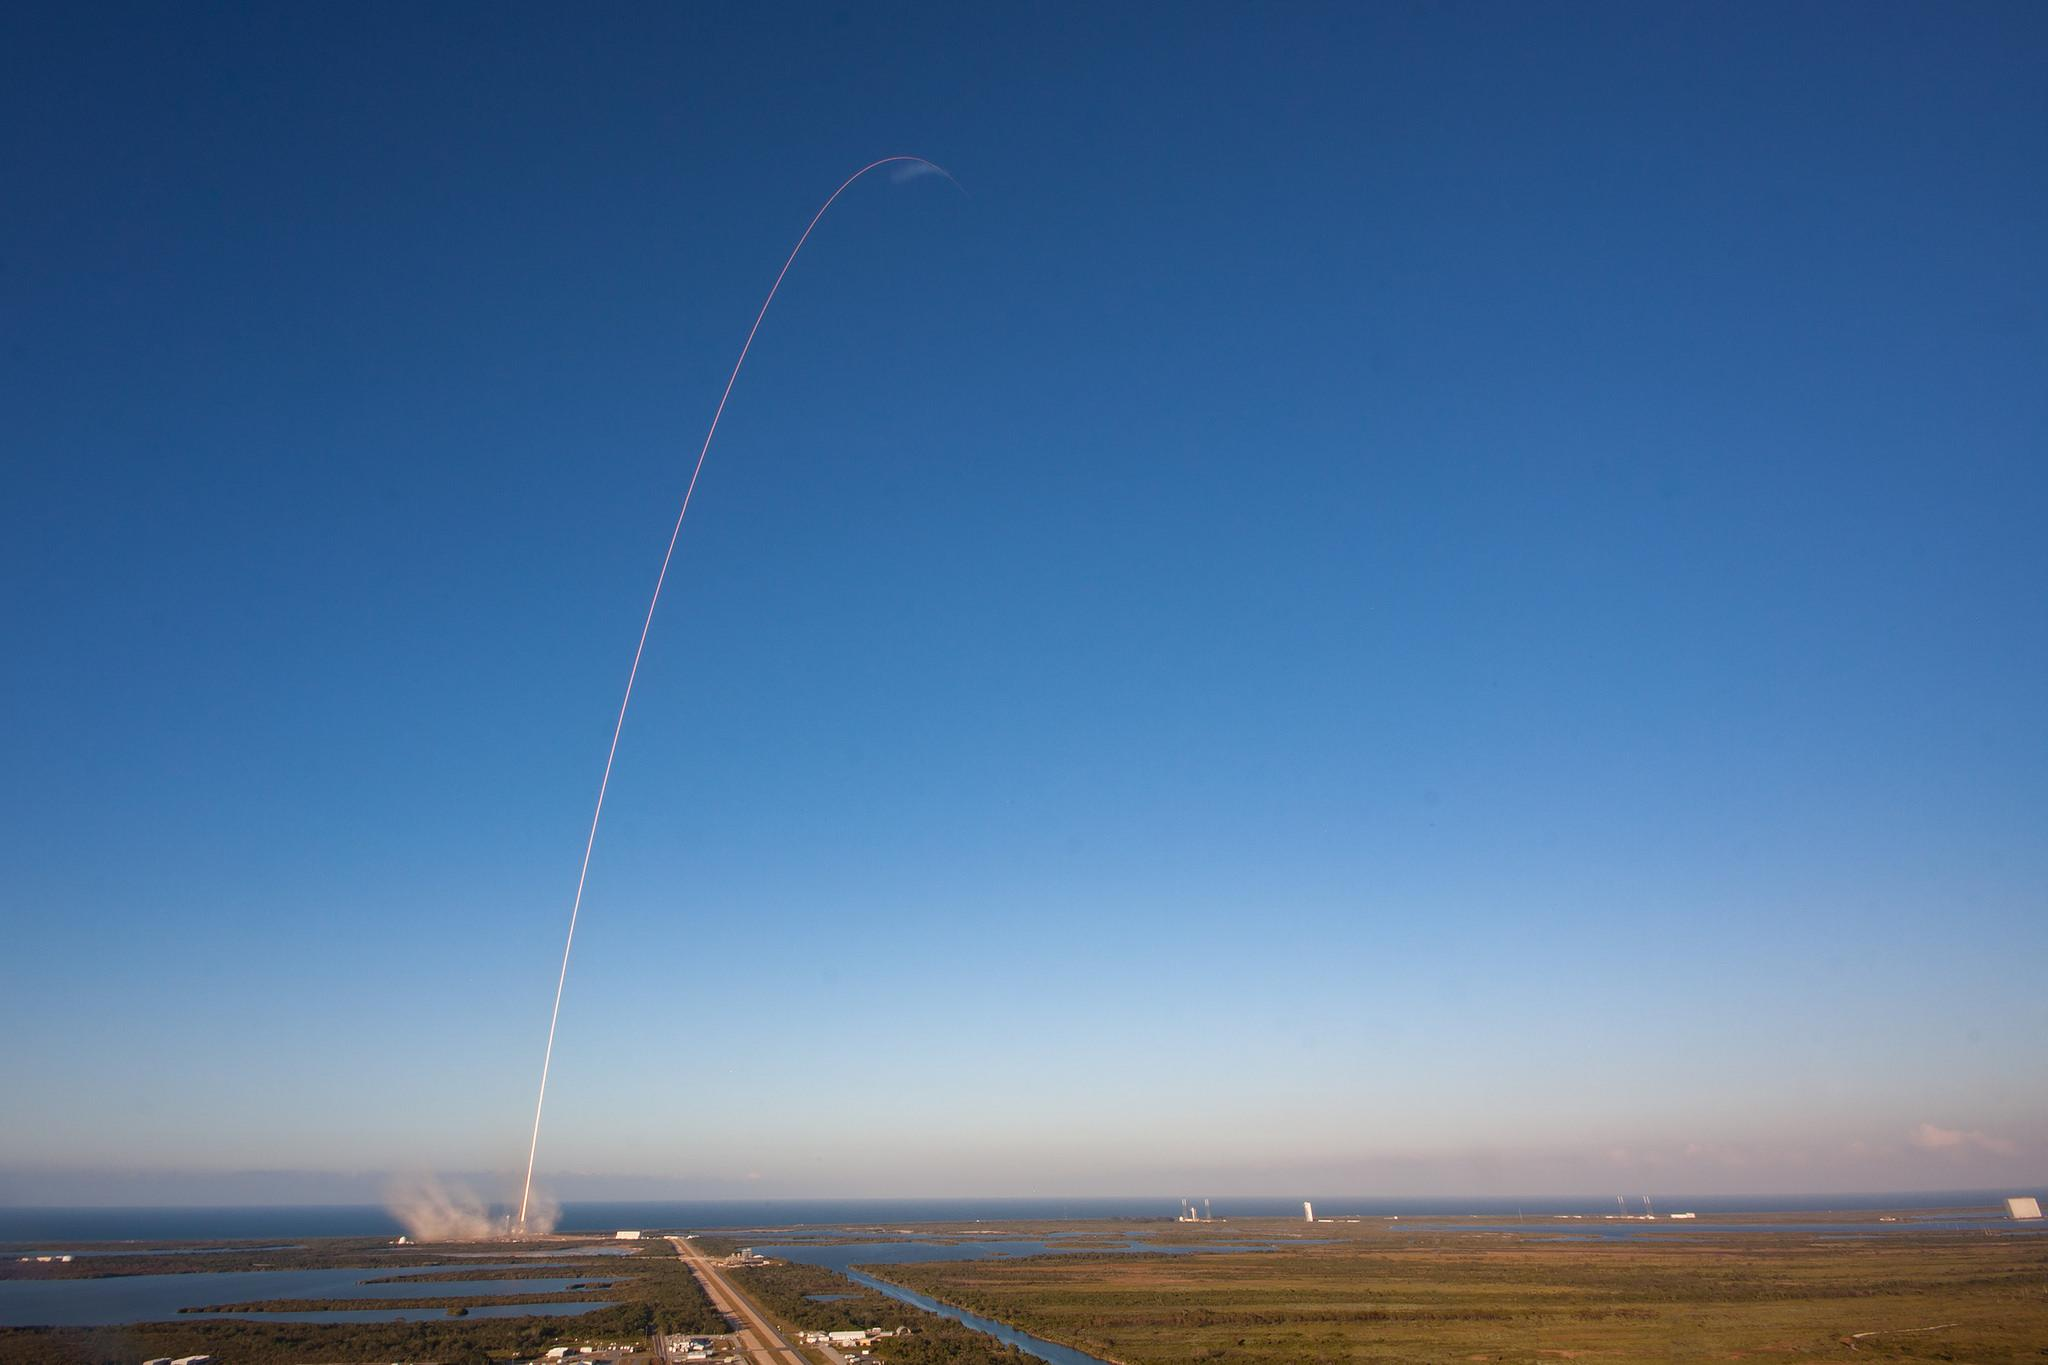 spaceX inmarsat 5